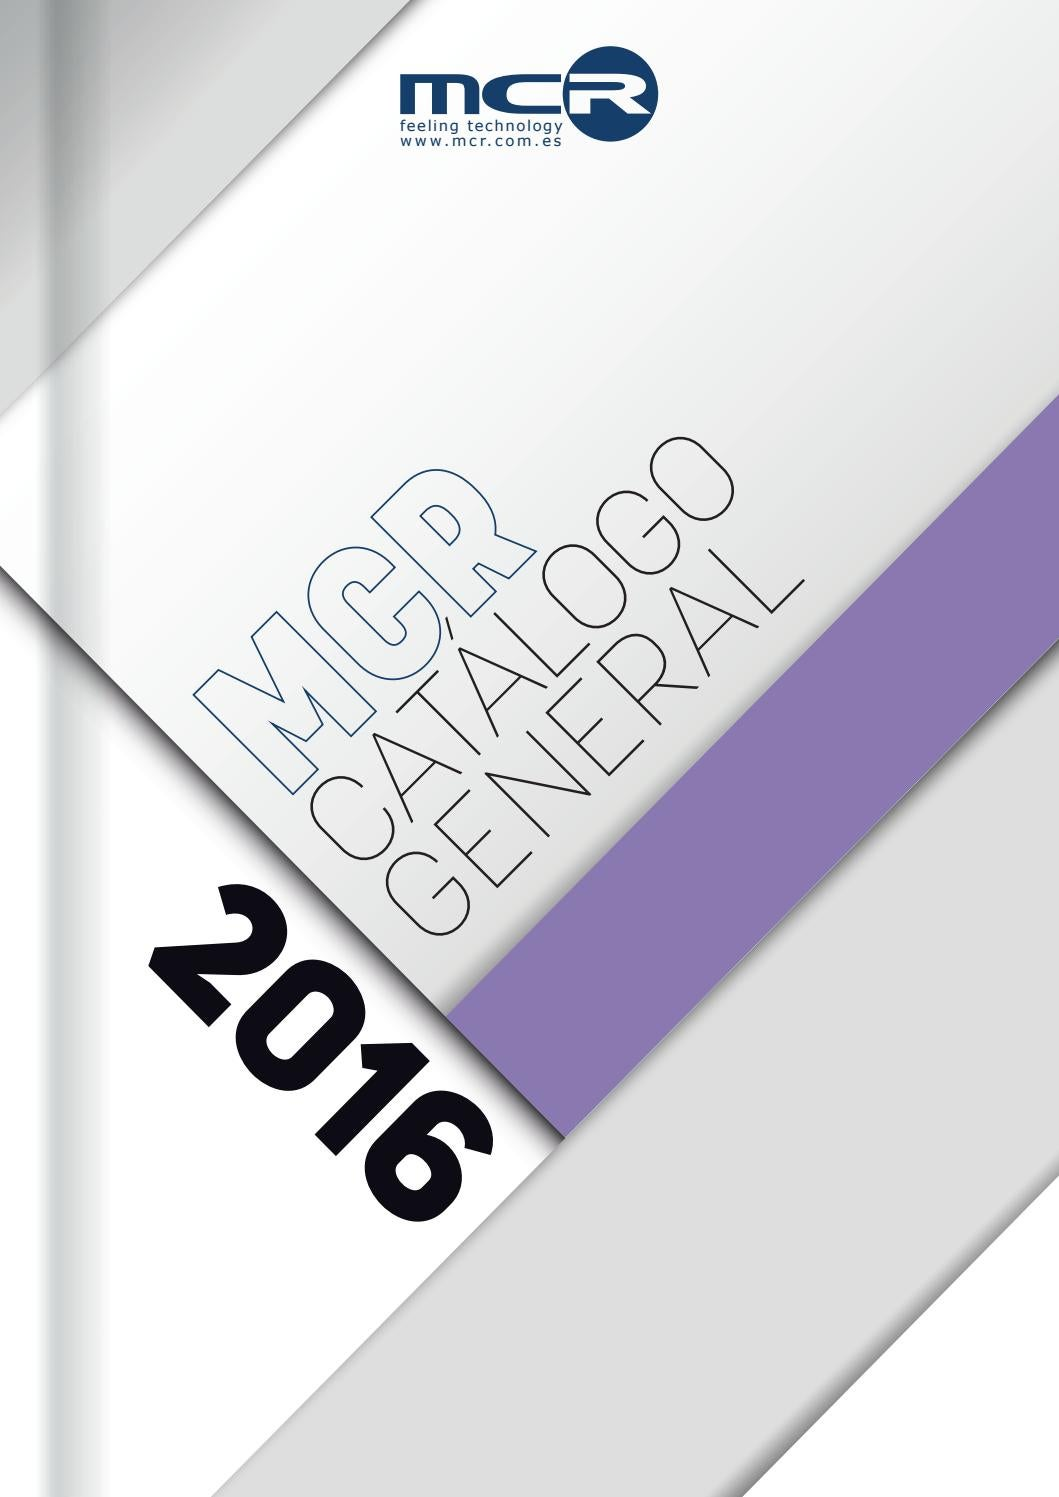 Mcr Catalogo General 2016 By Mcr Infoelectronic Issuu